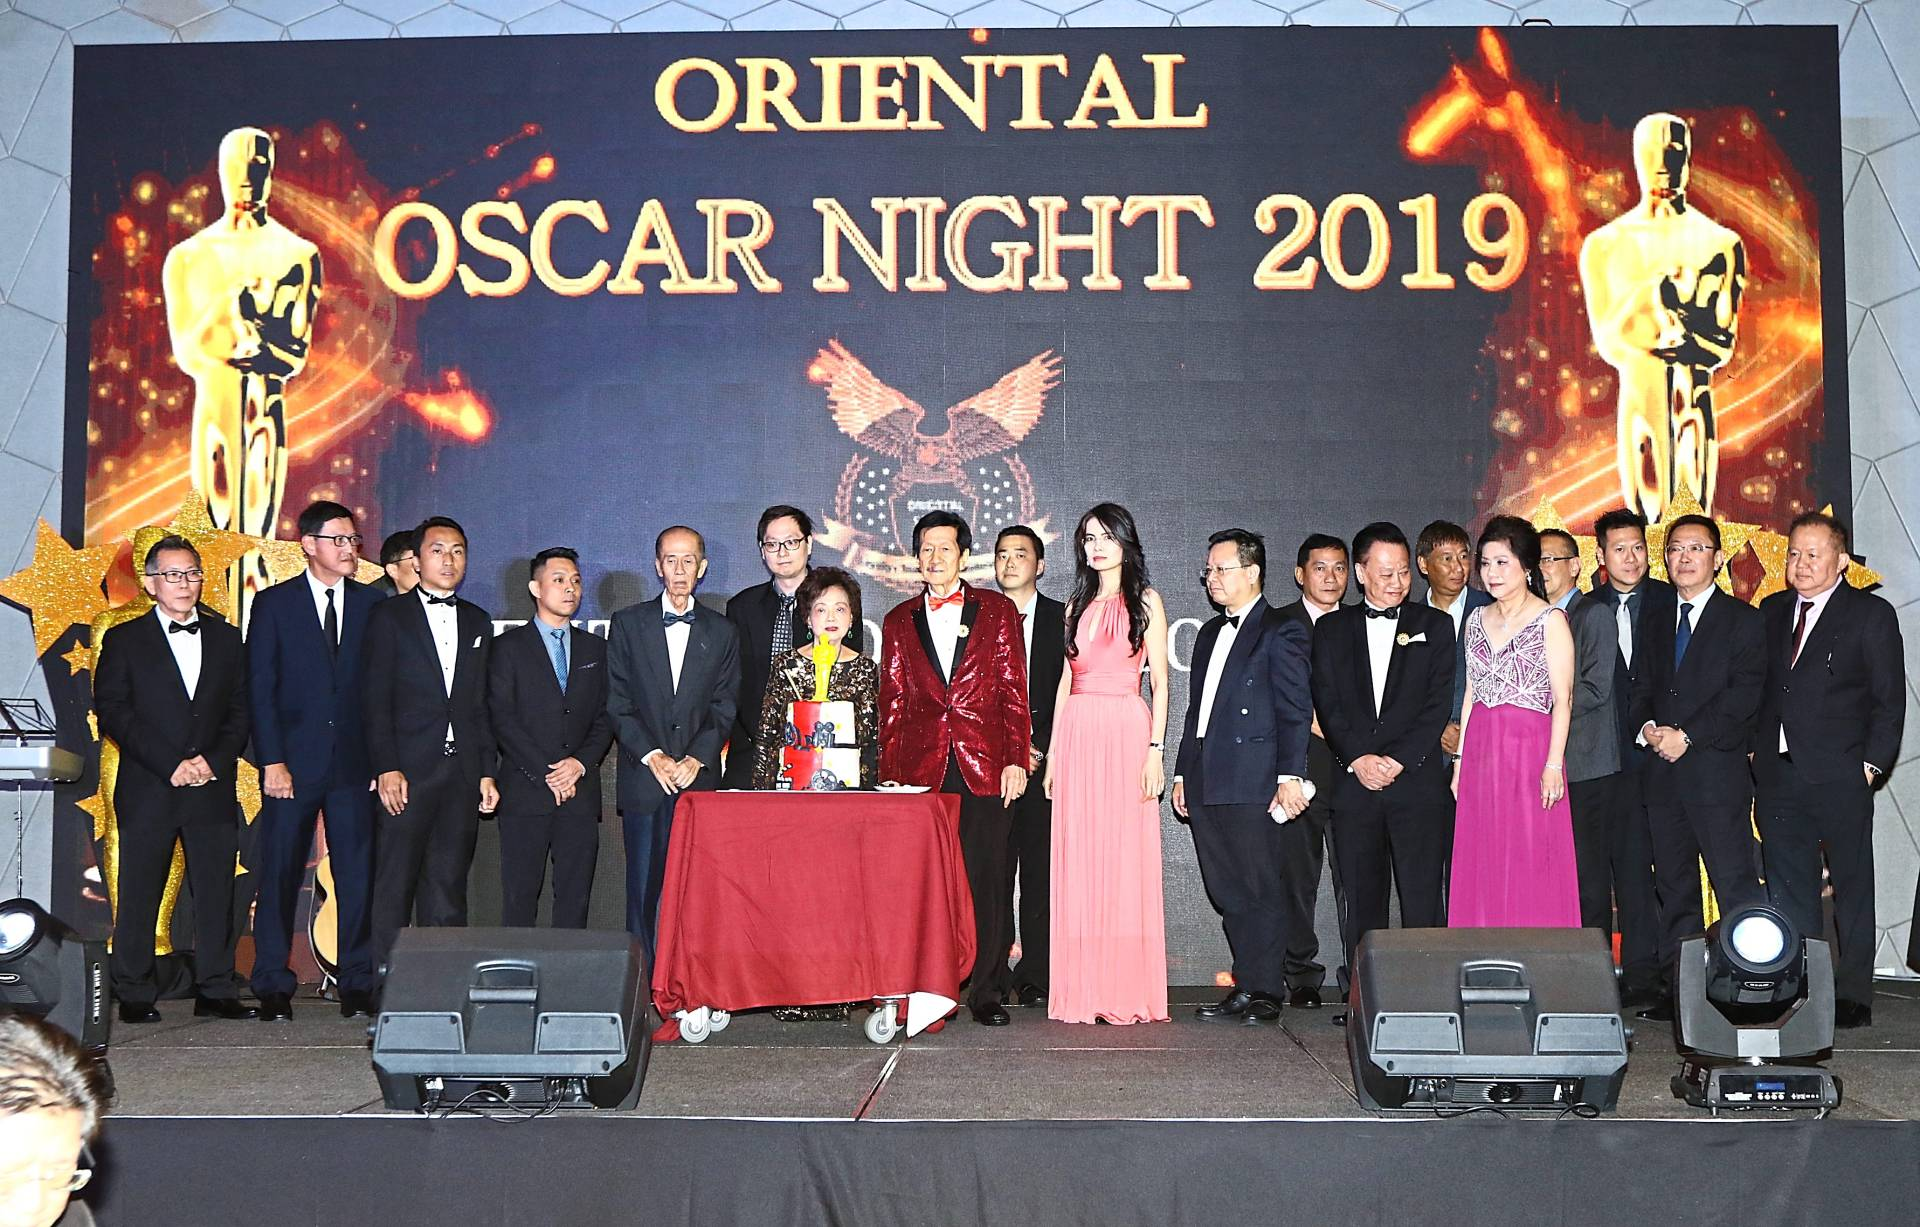 Wong (in red suit), his wife Loh Ean (at Wong's right), daughter Susan Wong (in pink) and son Tony Wong (behind Loh Ean) are joined by management staff during a cake-cutting ceremony at the Oriental Sports Club Oscar Night 2019 Annual Dinner.